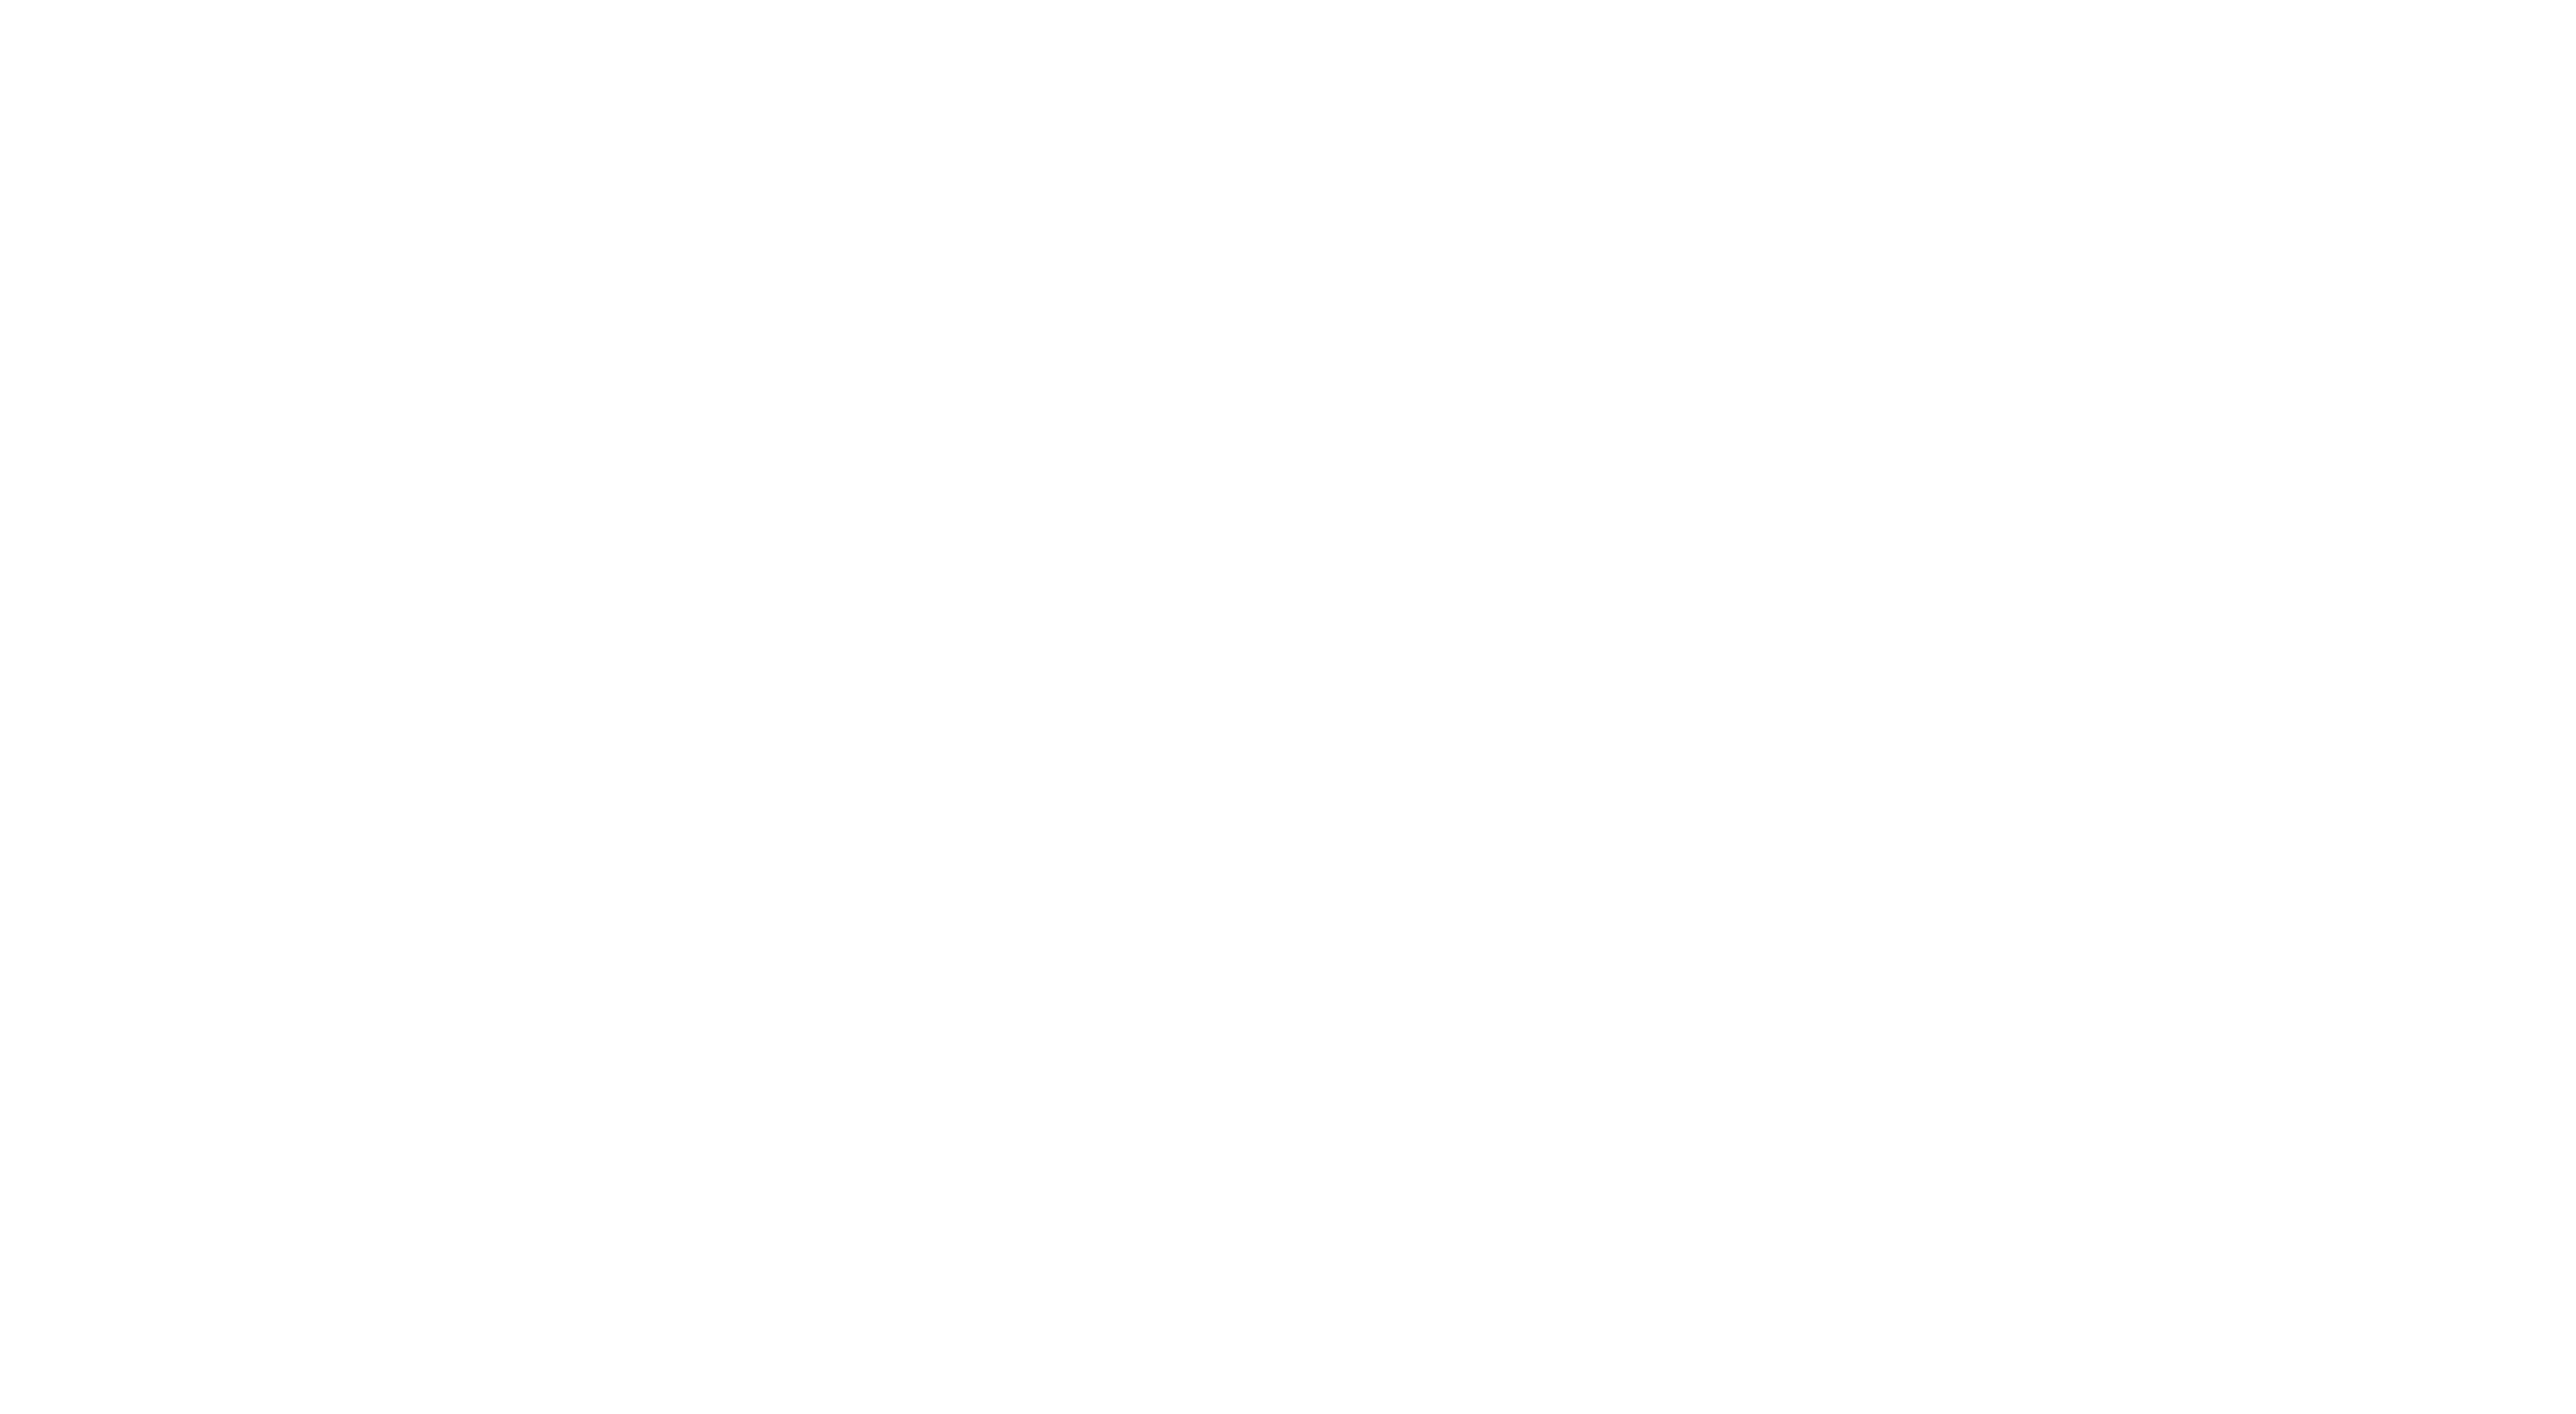 Van Norman Law